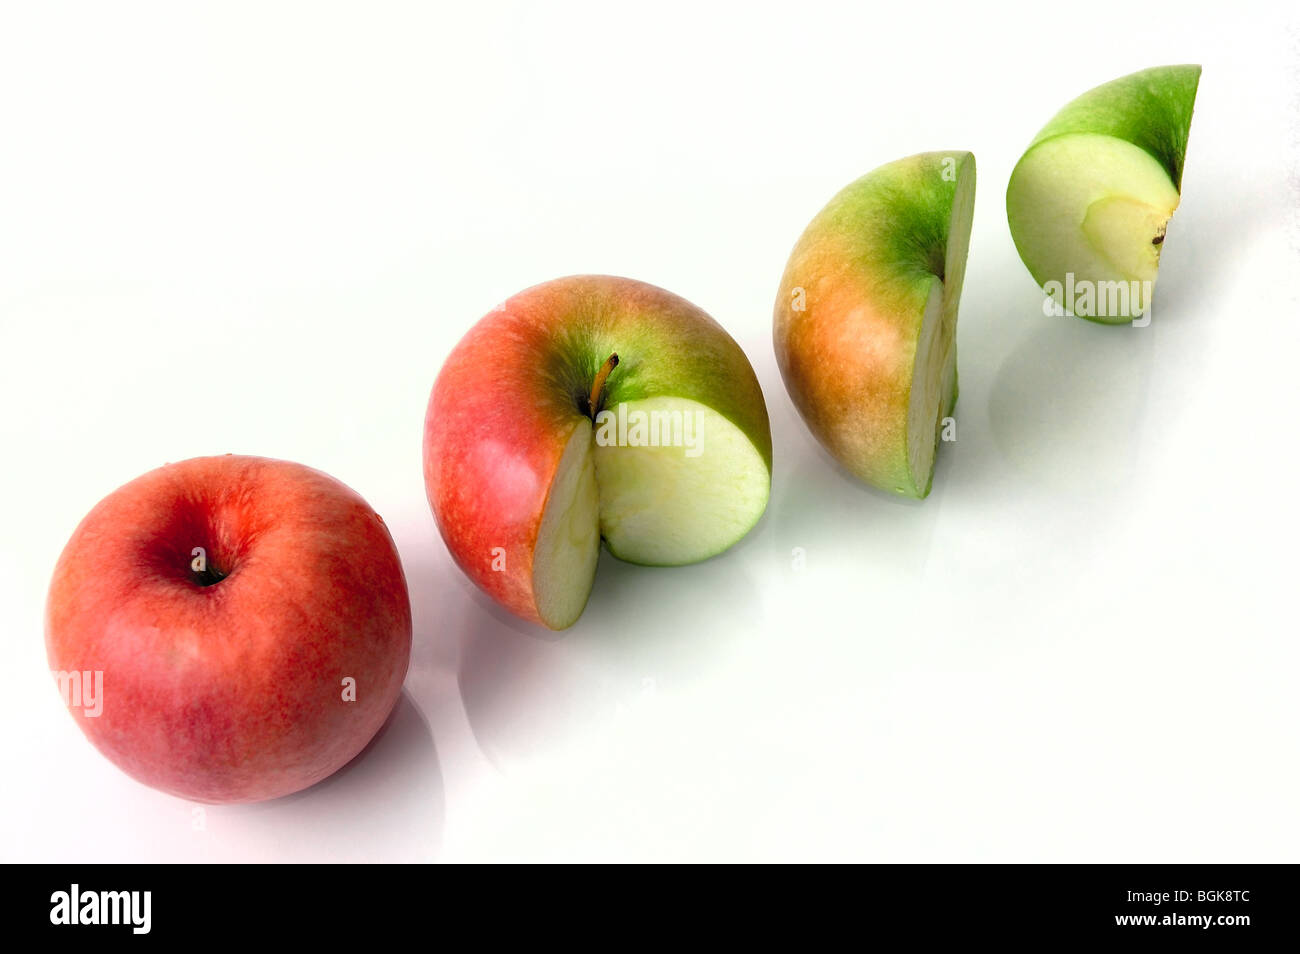 Four apples from red and whole to quater of green one isolated on white background, percentage concept, profit or Stock Photo